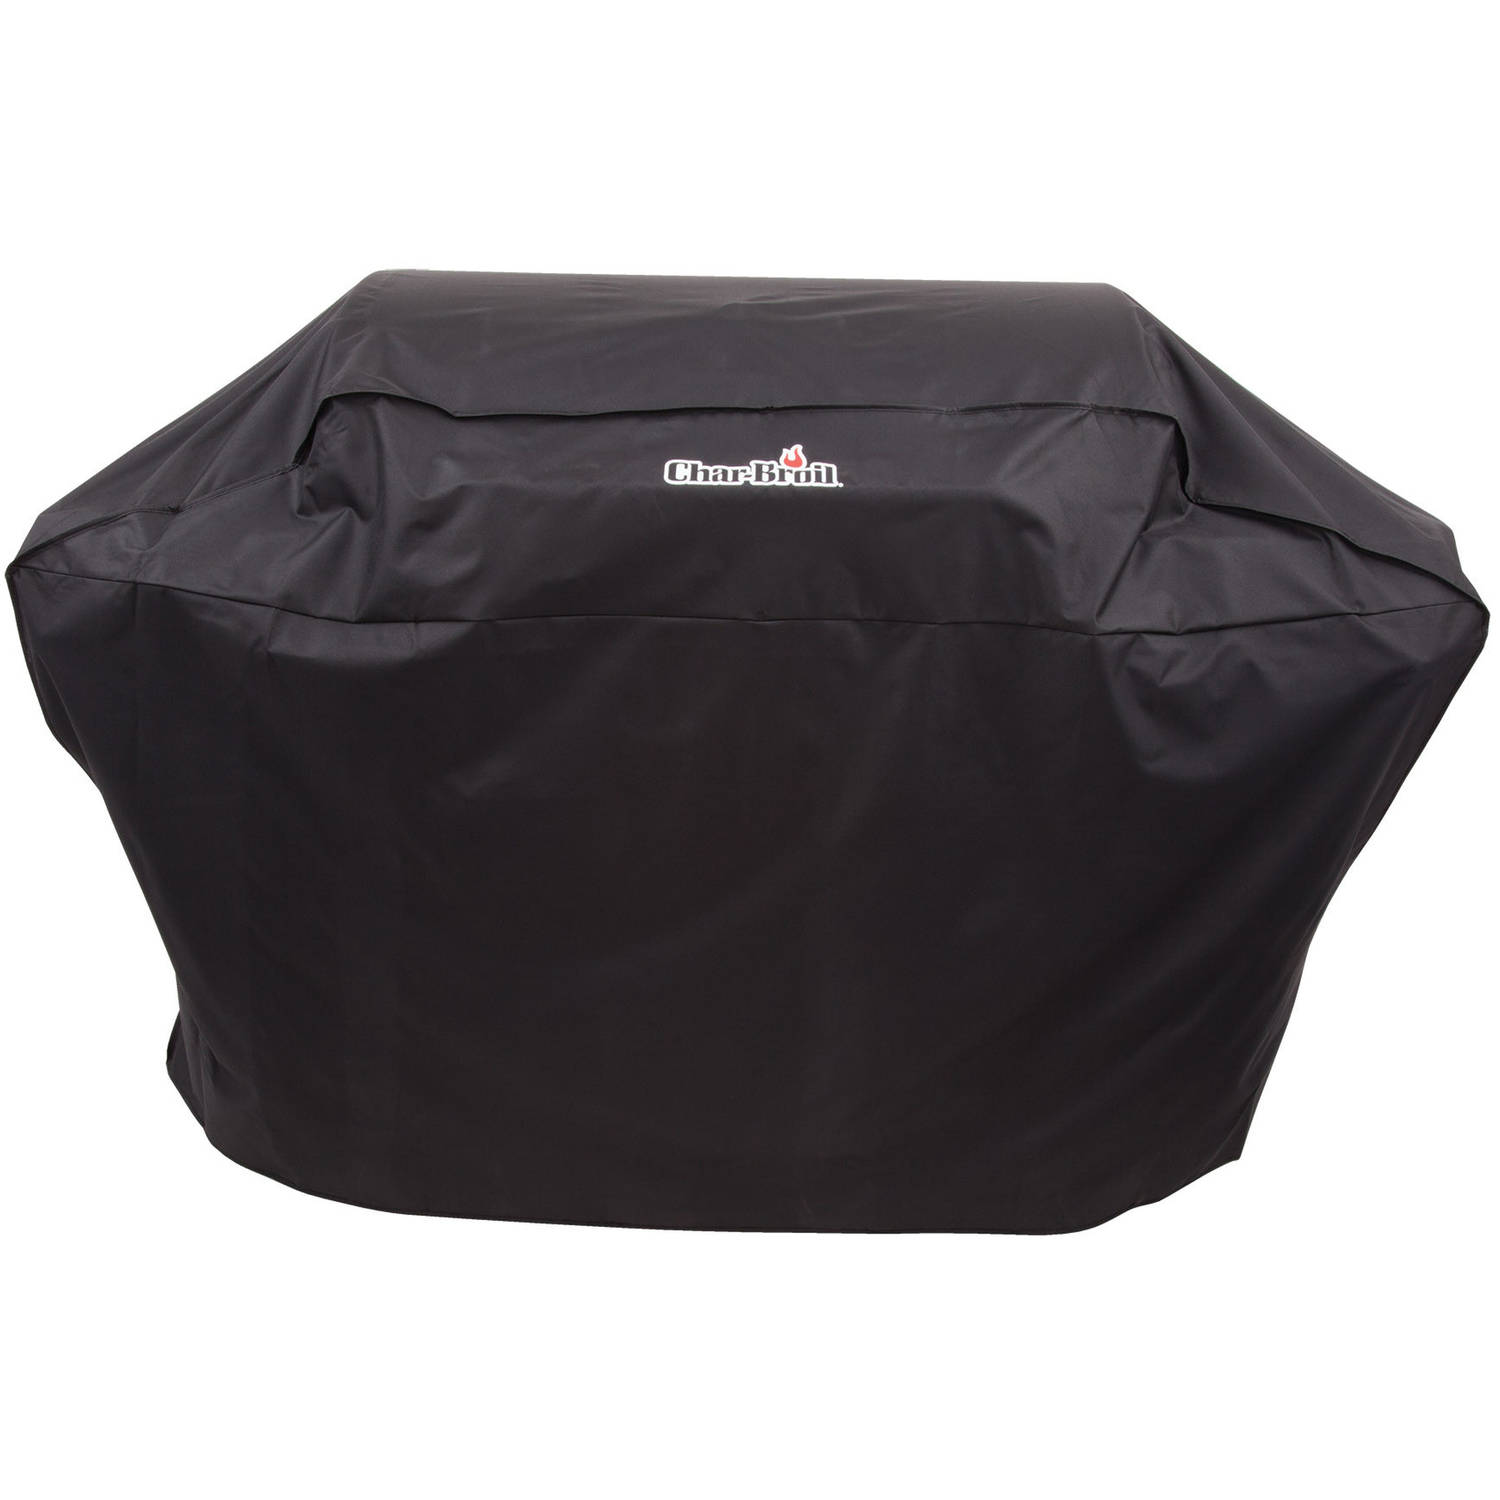 Char Broil 5+ Burner All-Season Grill Cover by